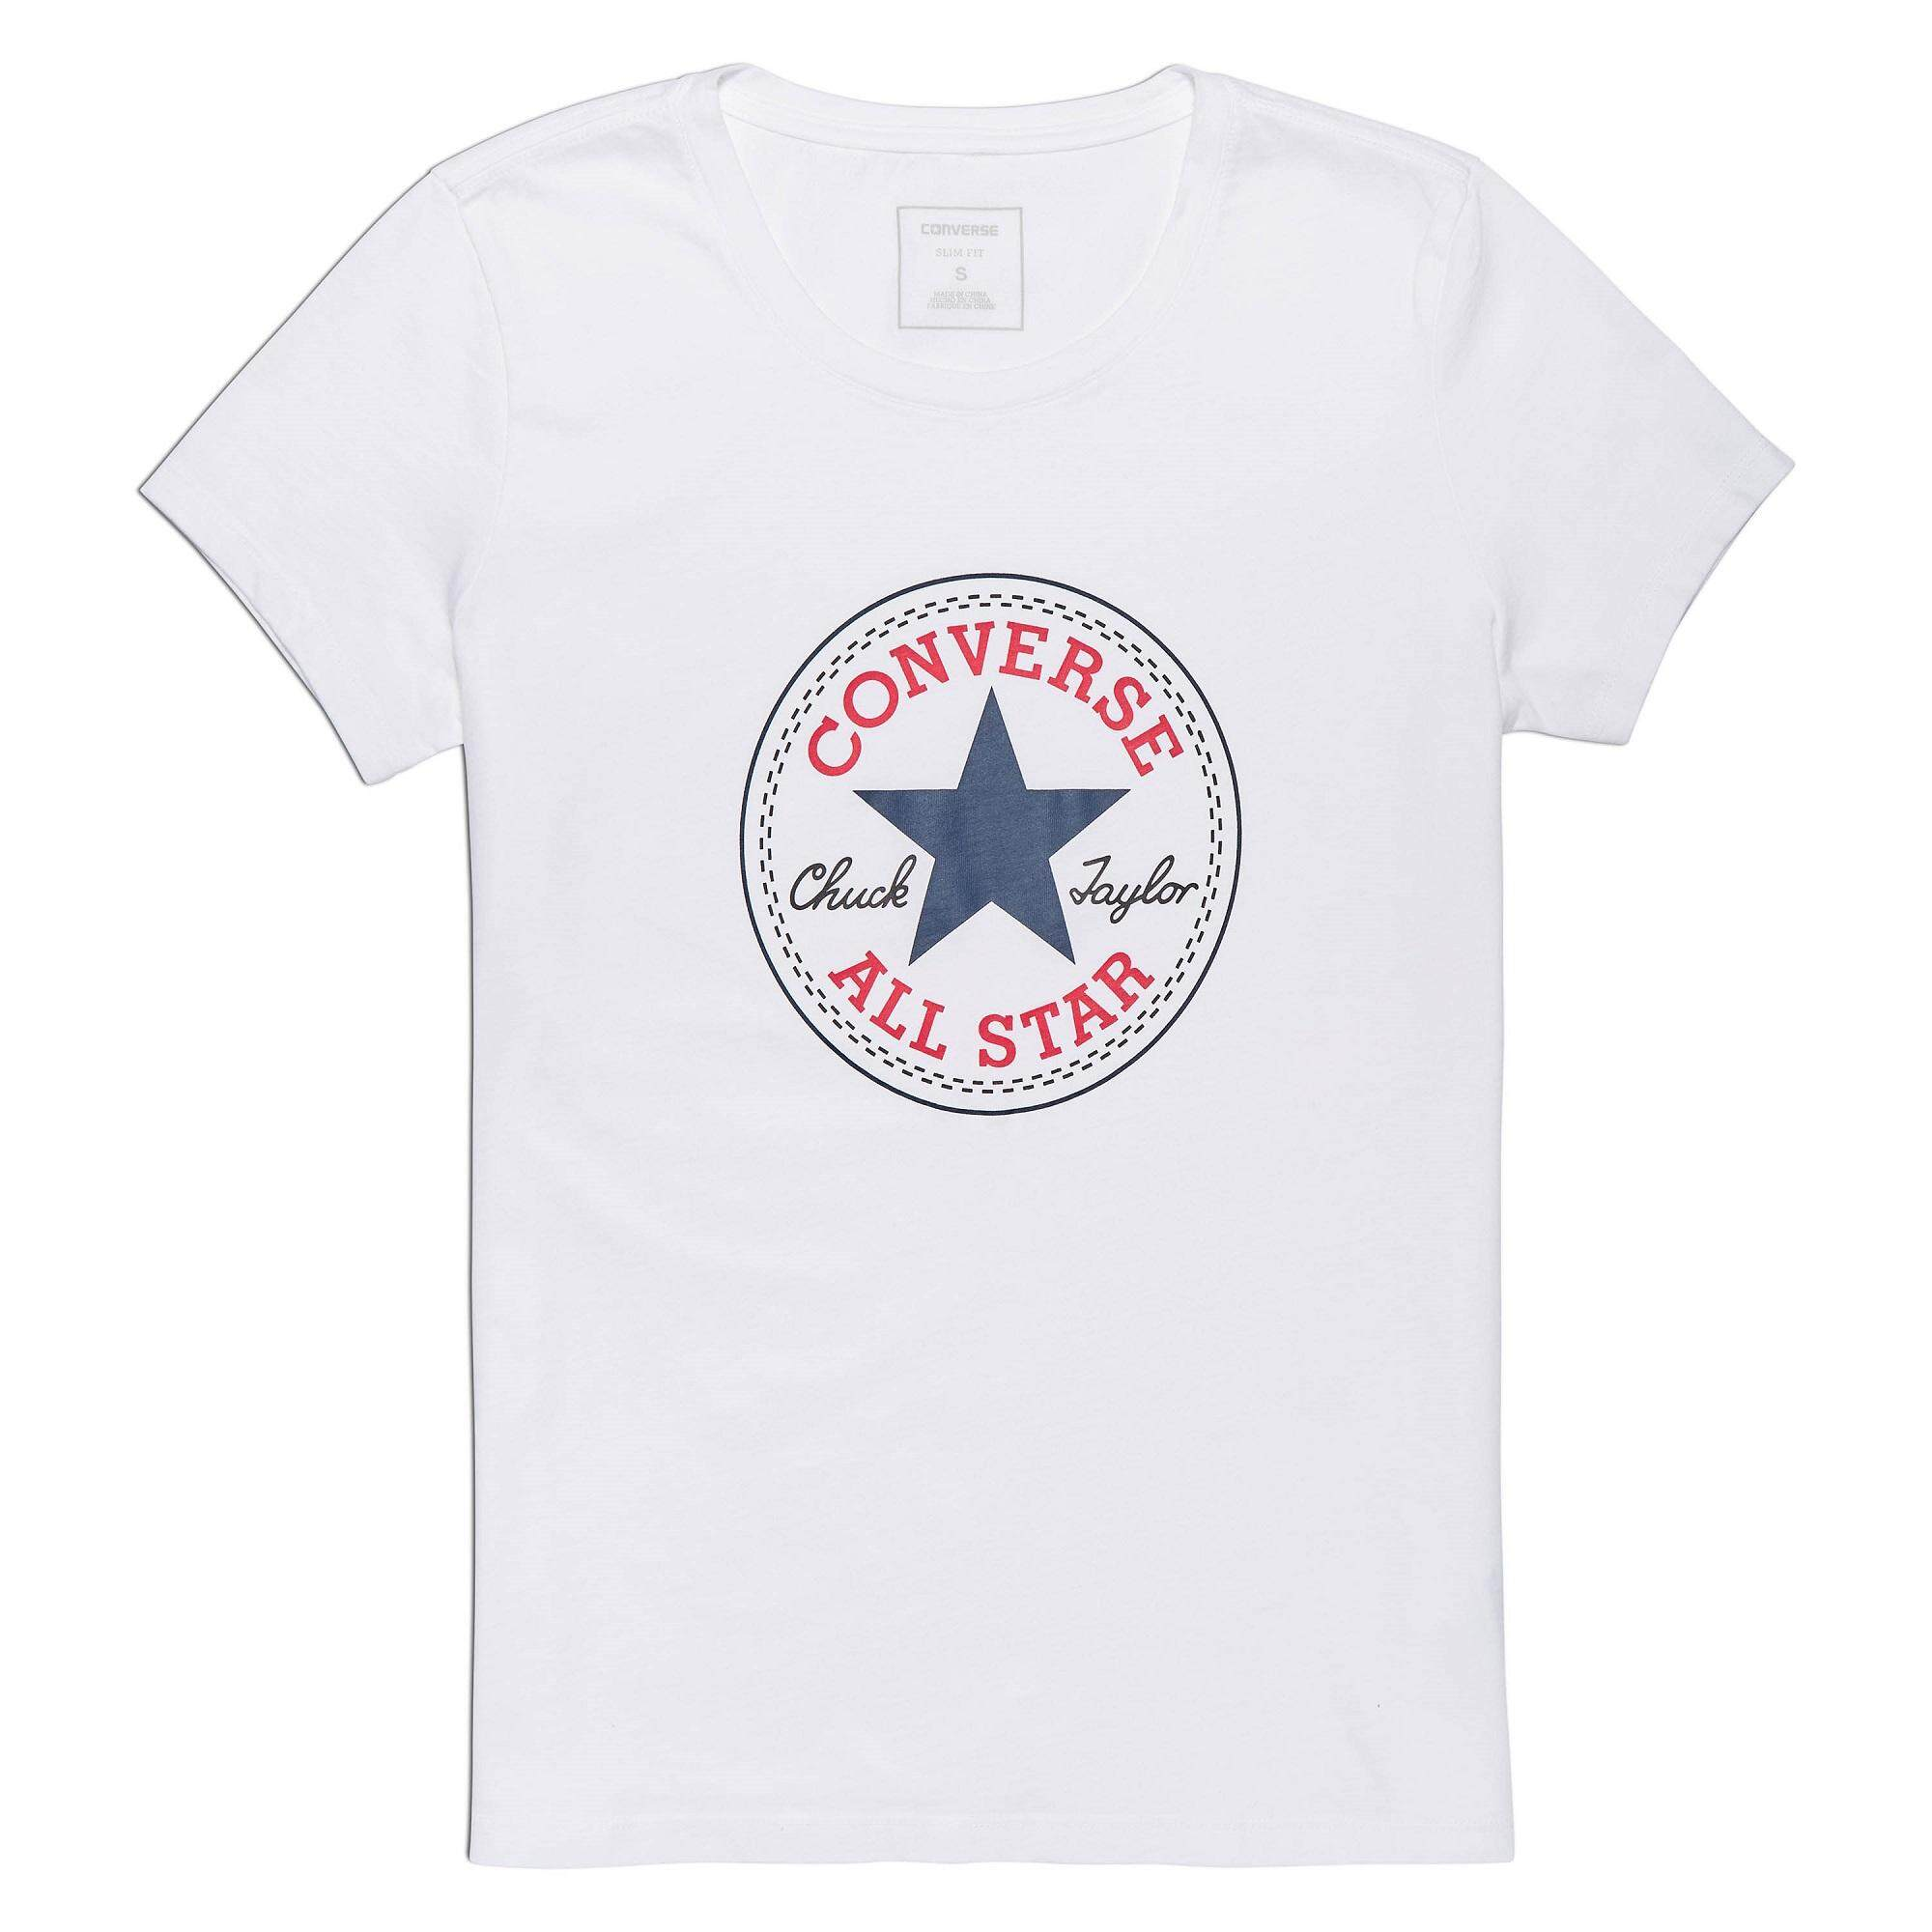 Converse Sneakers For The Best Price In Malaysia Tendencies Tshirt My Shirt Hitam S Core Cp Crew White 10006828 A07